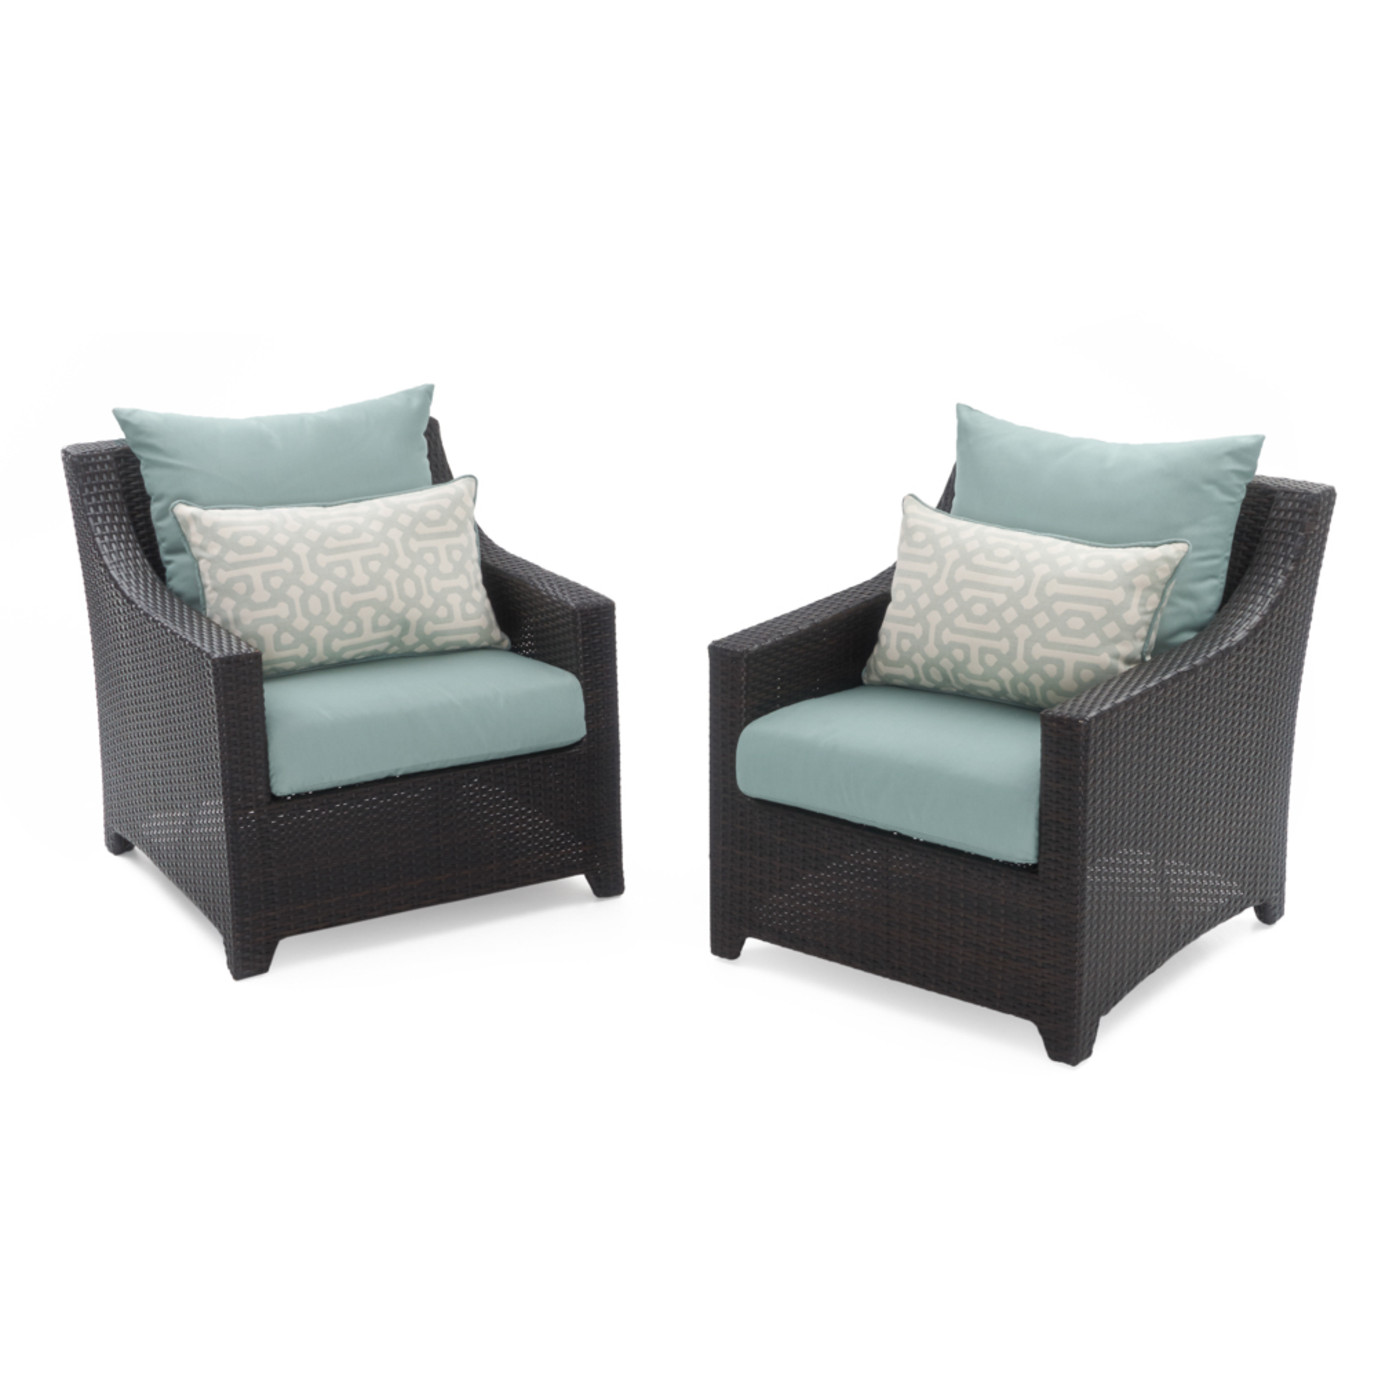 Deco™ Club Chairs - Spa Blue